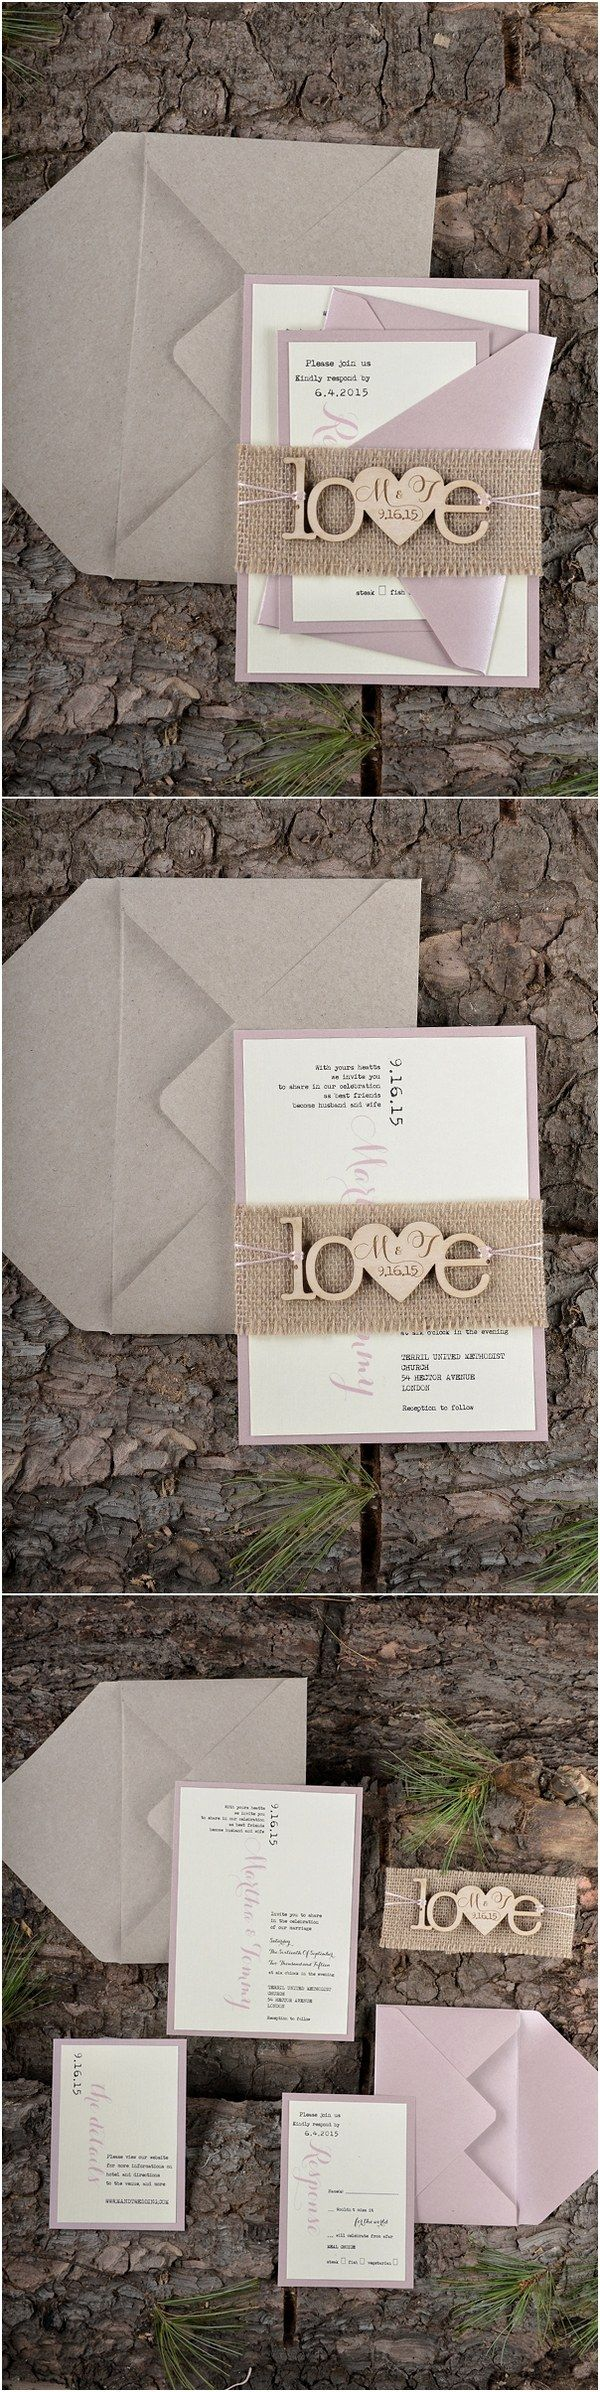 champagne blush wedding invitations%0A Rustic country burlap pink wedding invitations   LOVEPolkaDots